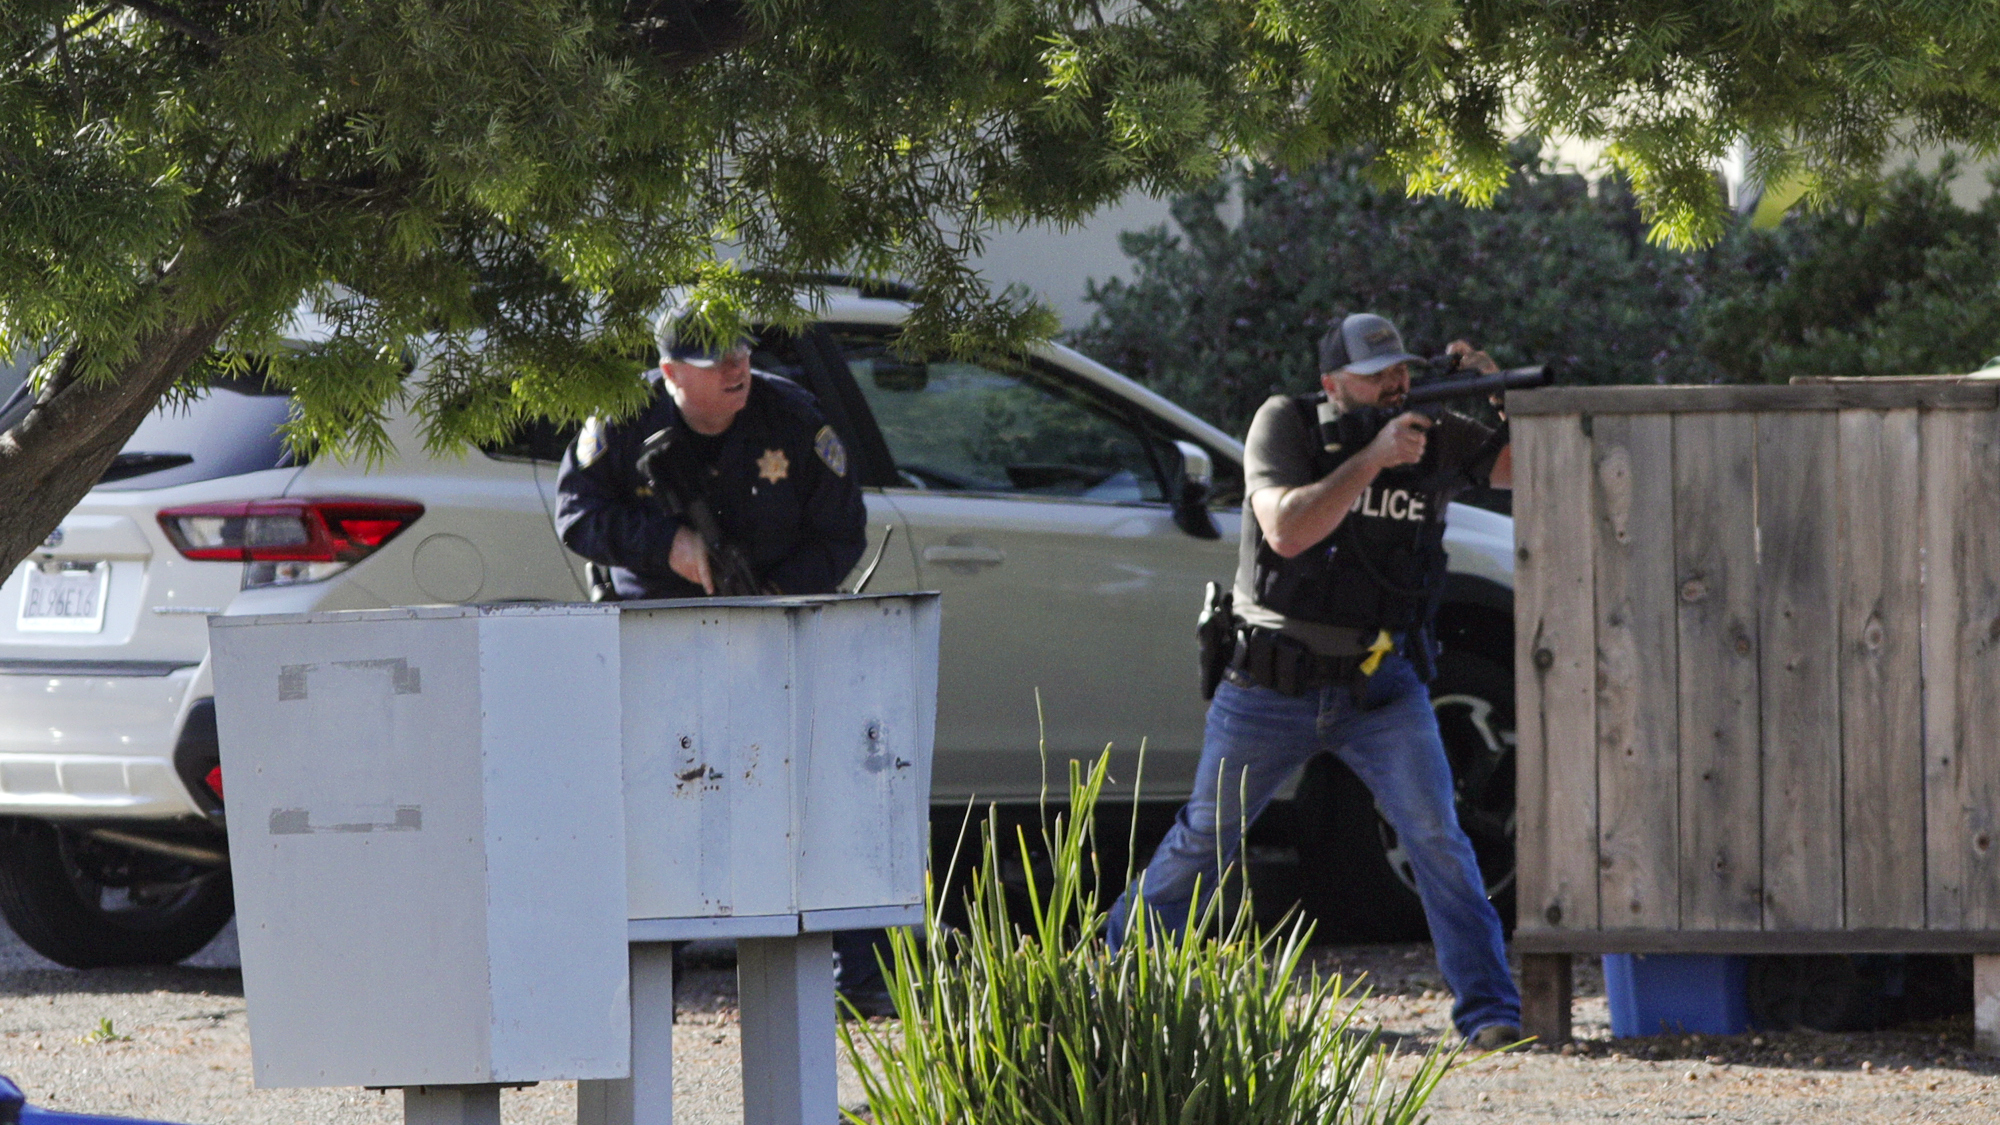 Officers take aim at an apartment across Camilla Court on May 10, 2021, in San Luis Obispo, Calif. (David Middlecamp/The Tribune of San Luis Obispo via AP)